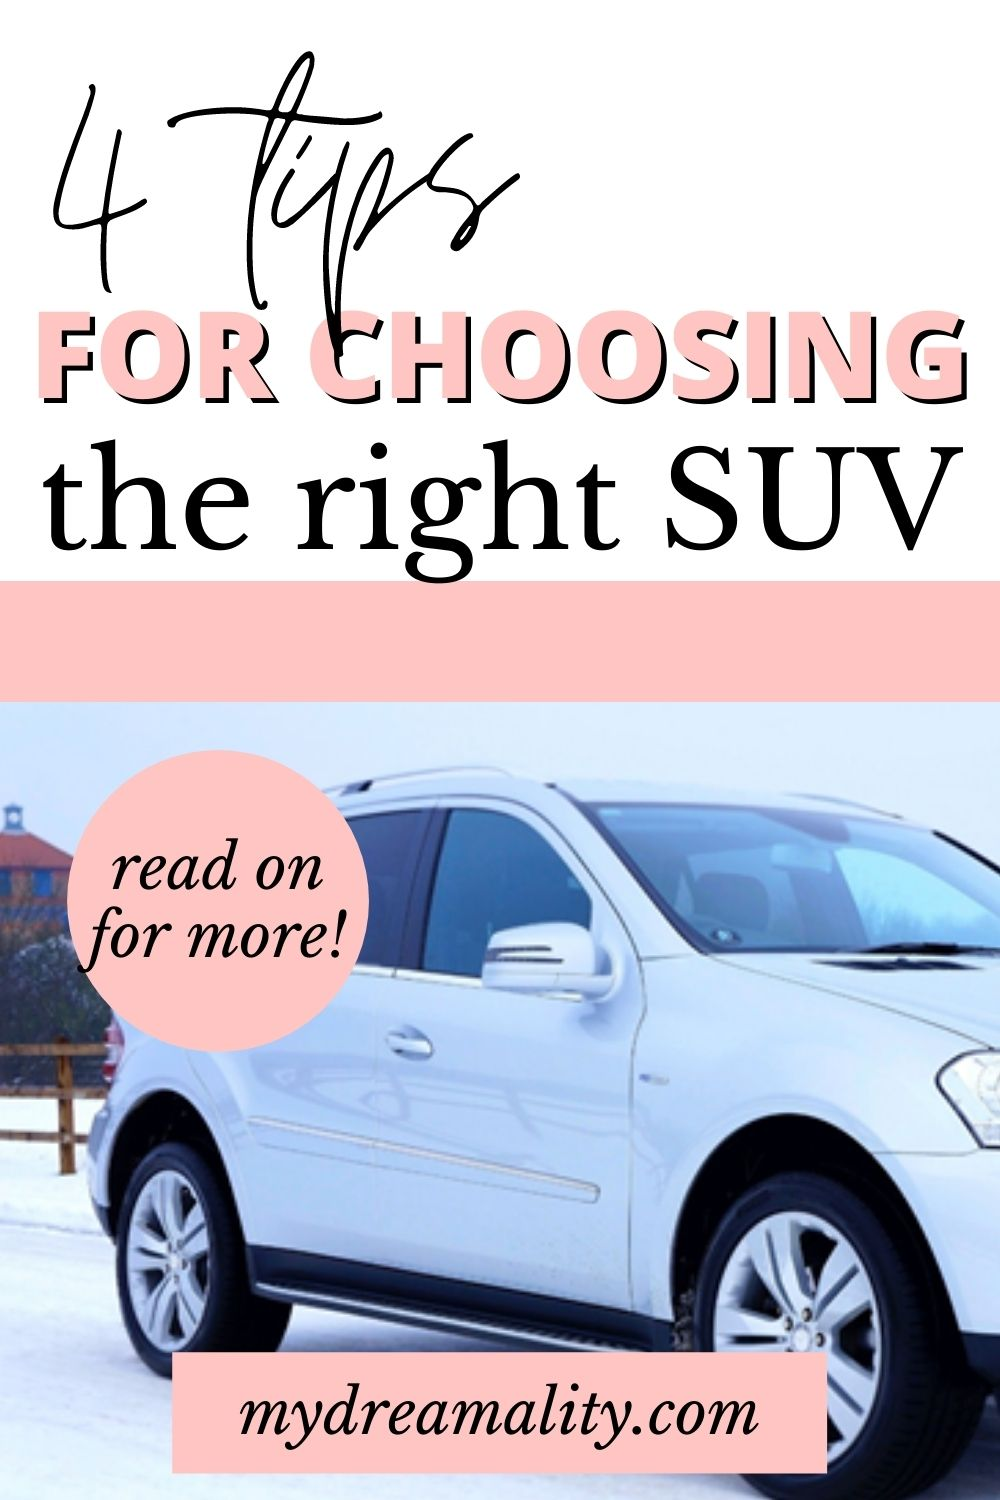 4 Crucial Tips for Choosing the Right SUV